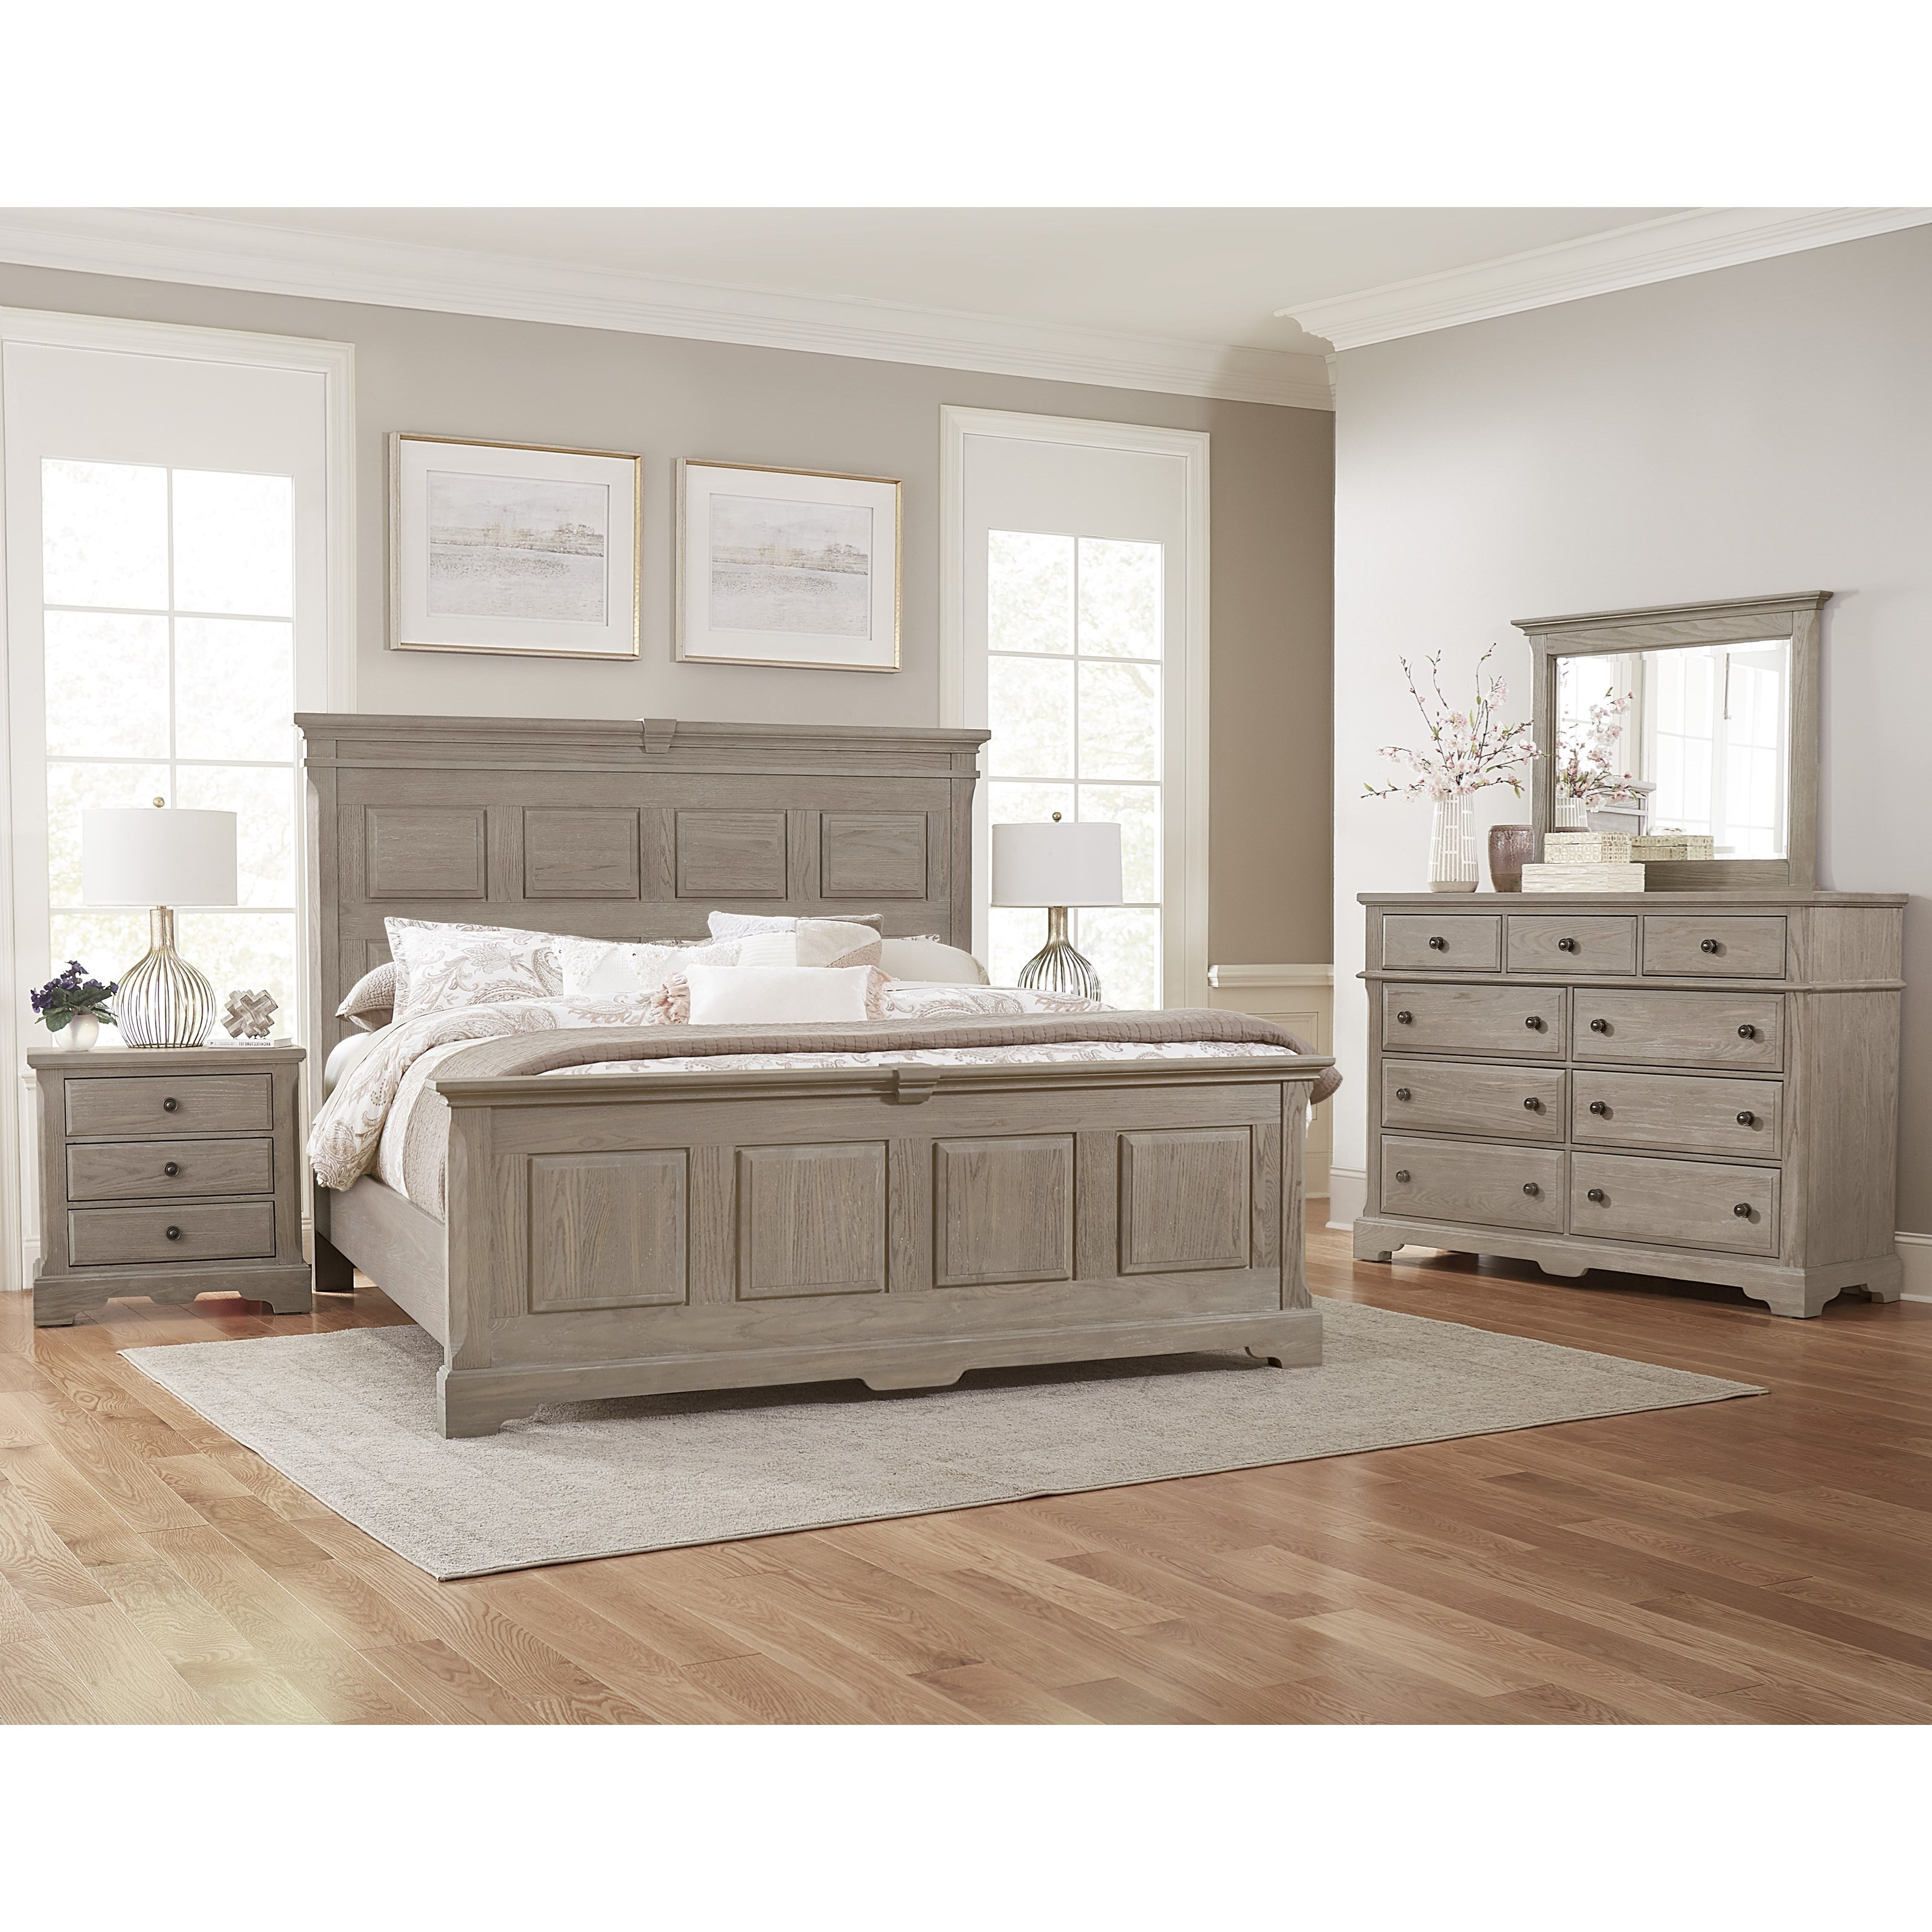 Heritage California King Bedroom Group by Artisan & Post at Rooms and Rest